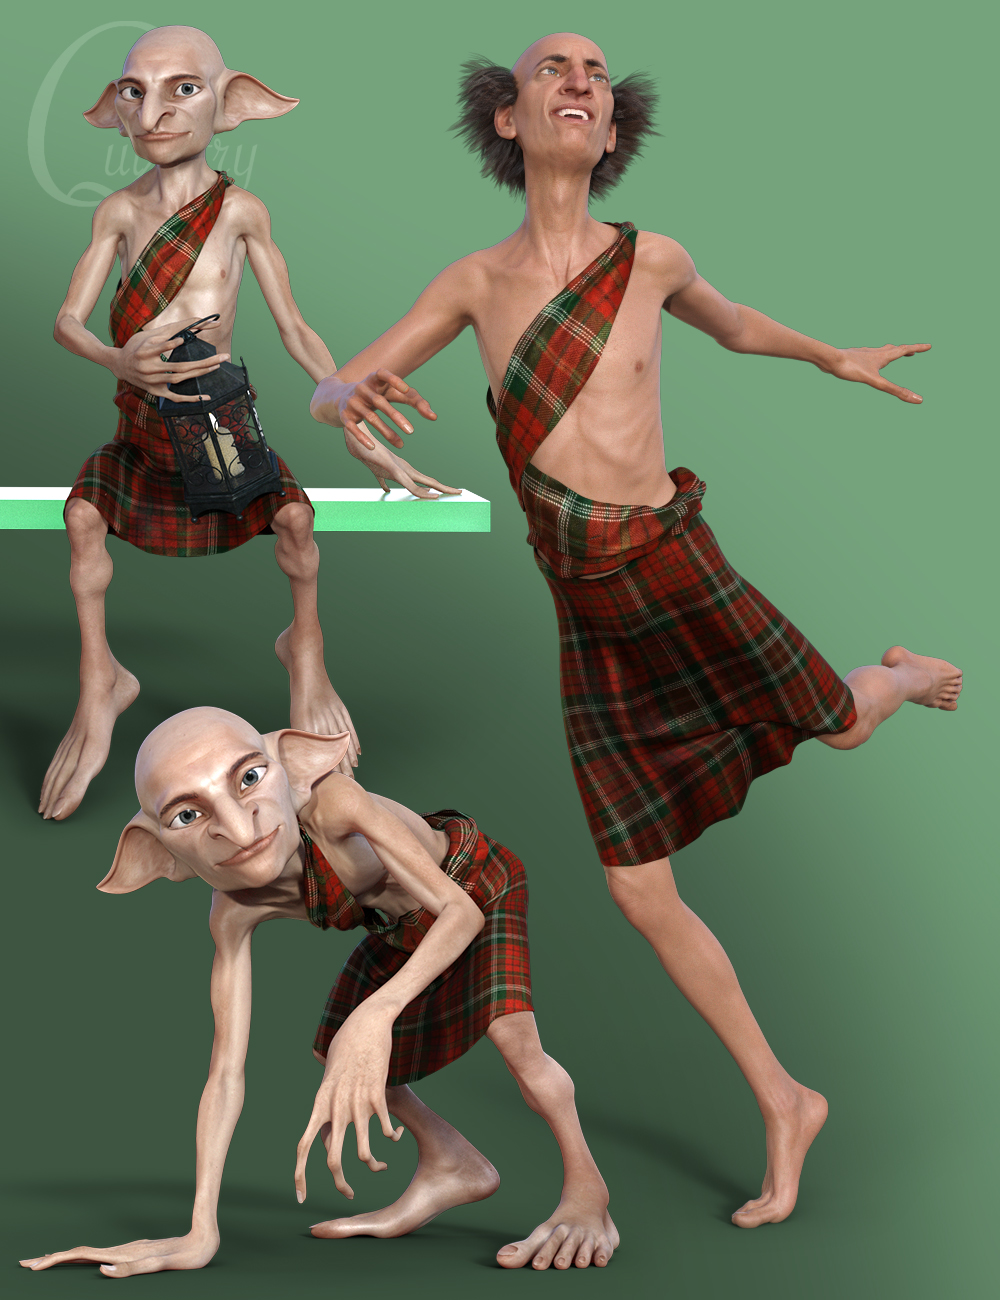 Quixotry's Poses for Boggles and Ollie 8 by: Quixotry, 3D Models by Daz 3D